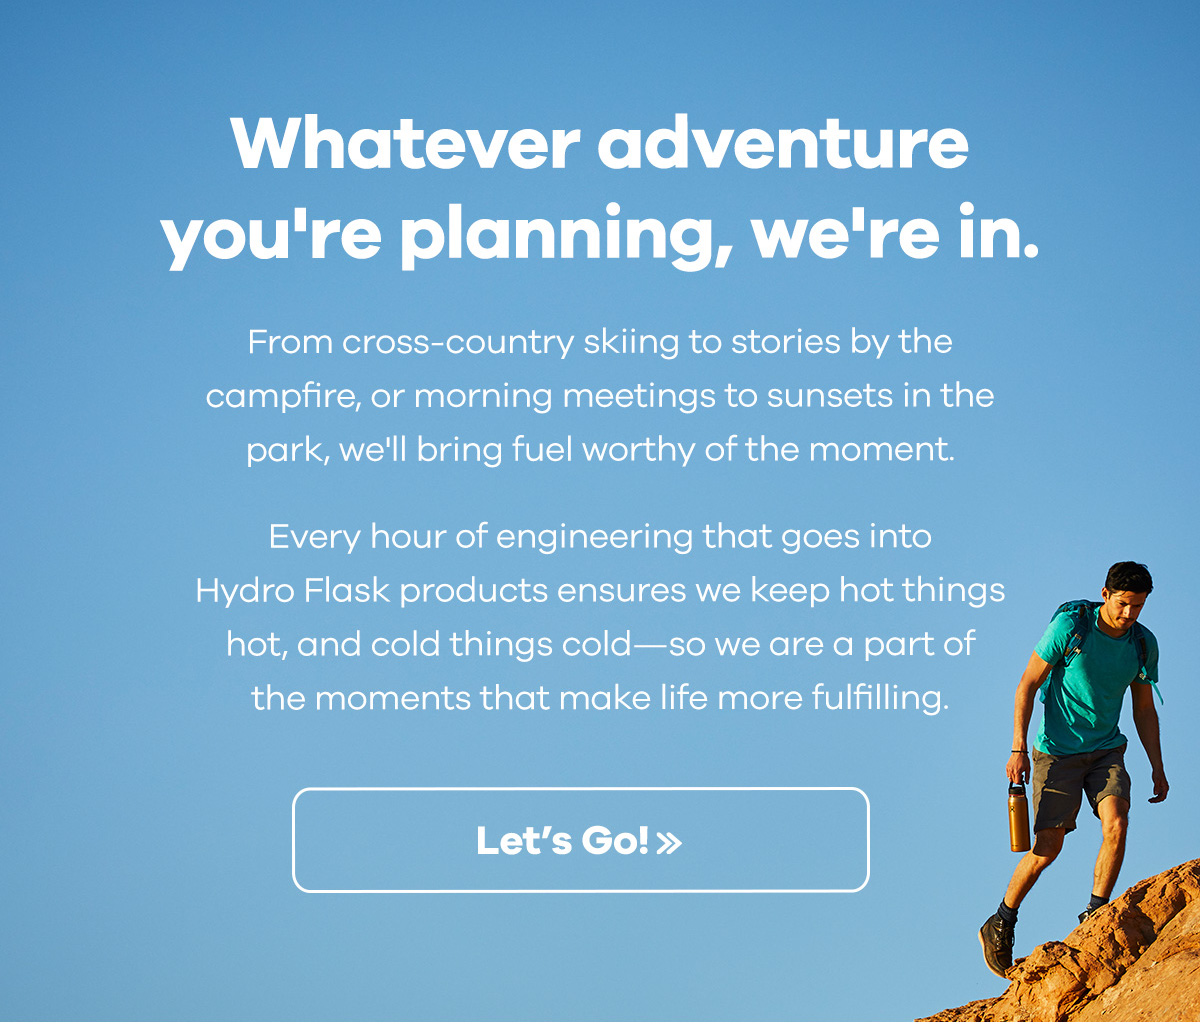 Whatever adventure you''re planning, we''re in. - From cross-country skiing to stories by the campfire, or morning meetings to sunset in the park, we''ll bring fuel worthy of the moment. Every hour of engineering that goes into Hydro Flask products ensures we keep hot things hot, and cold things cold-so we are part of the moments that make life more fulfilling. | Let''s Go >>